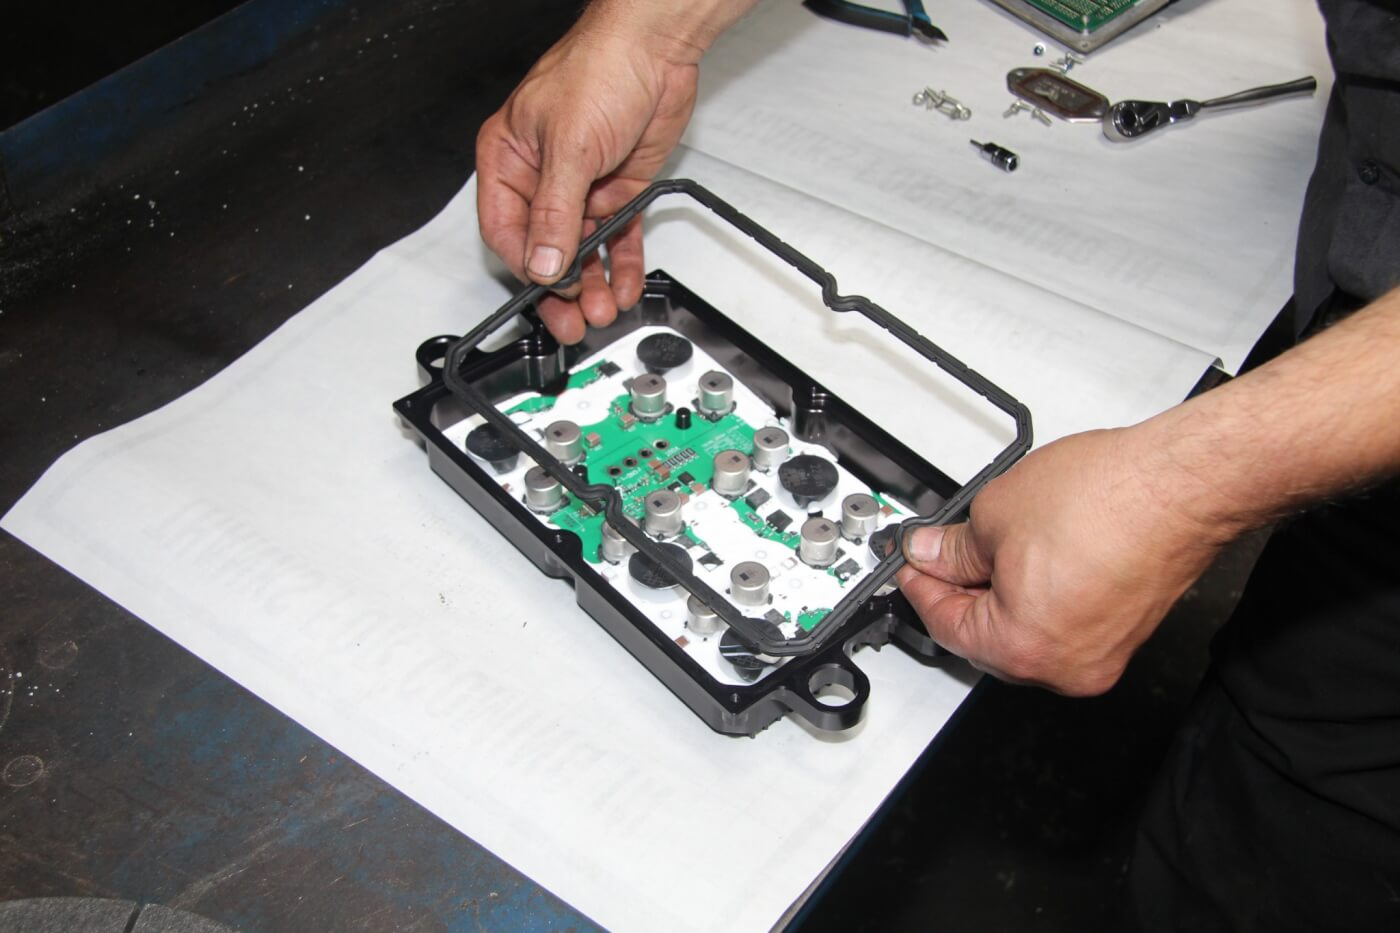 10. When reassembling the FICM with the Bullet Proof power supply, the OEM gasket is reused.